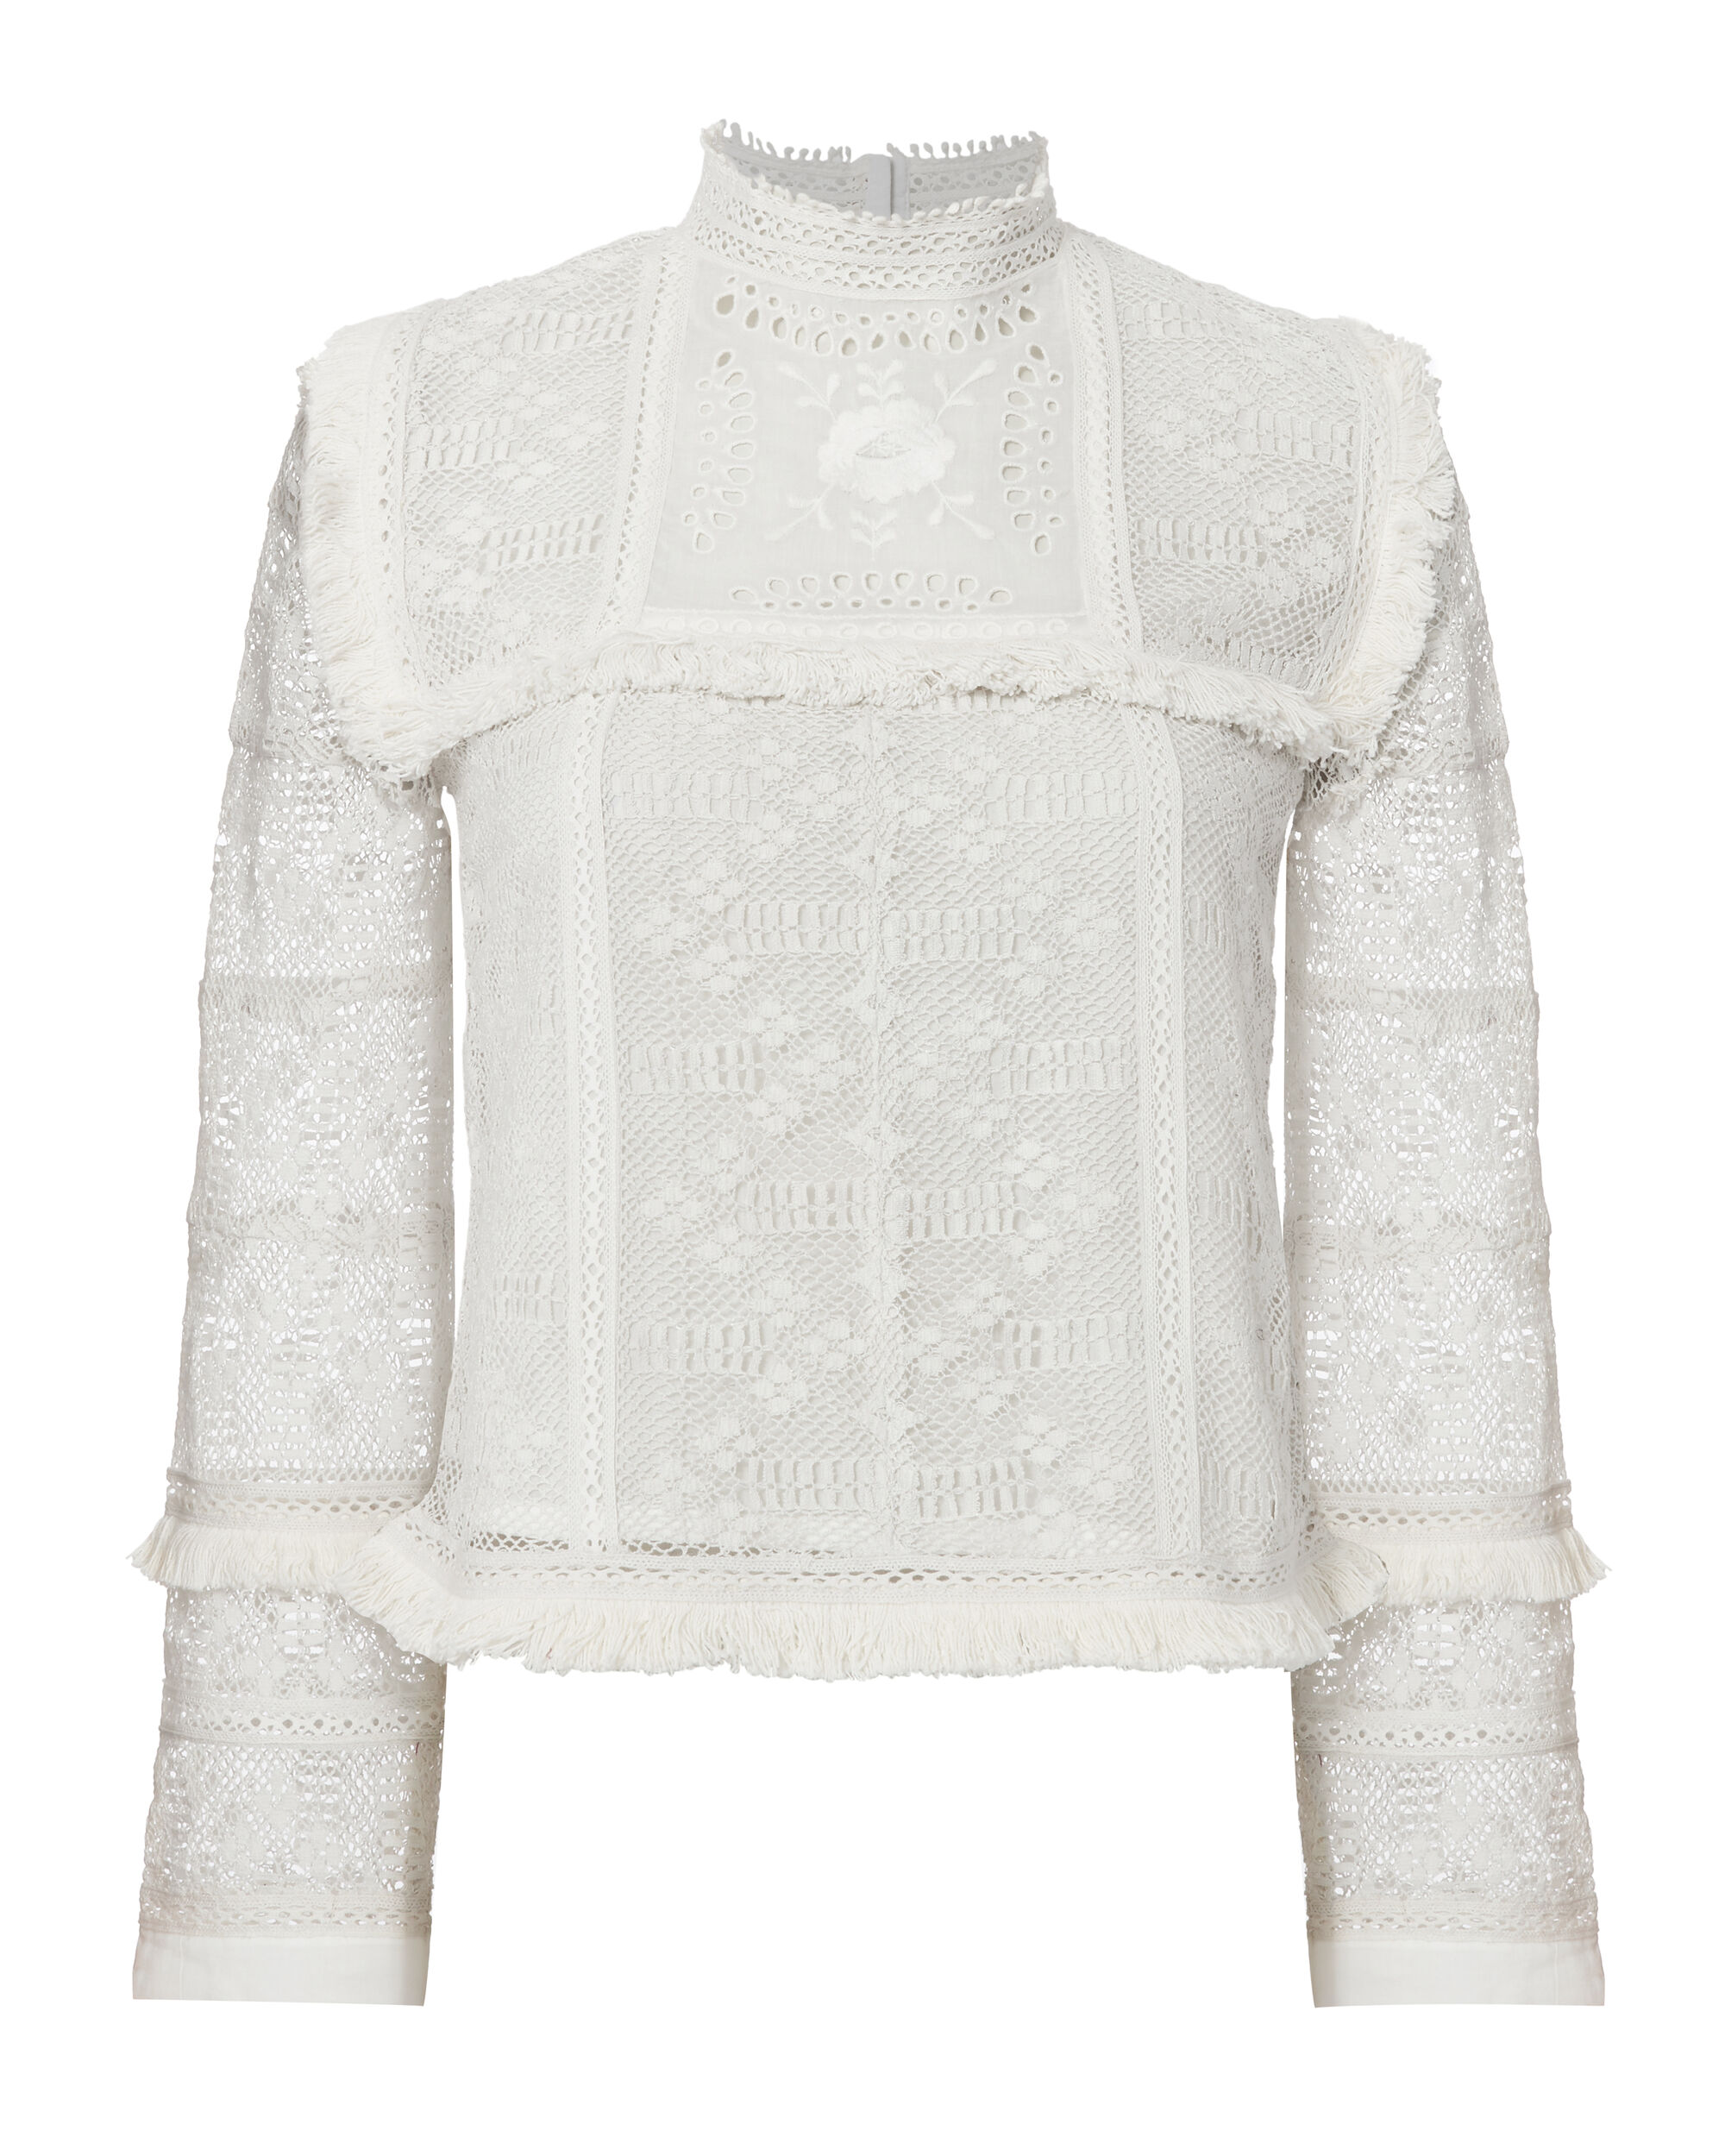 Giovanna Mock Neck Lace Top, IVORY, hi-res